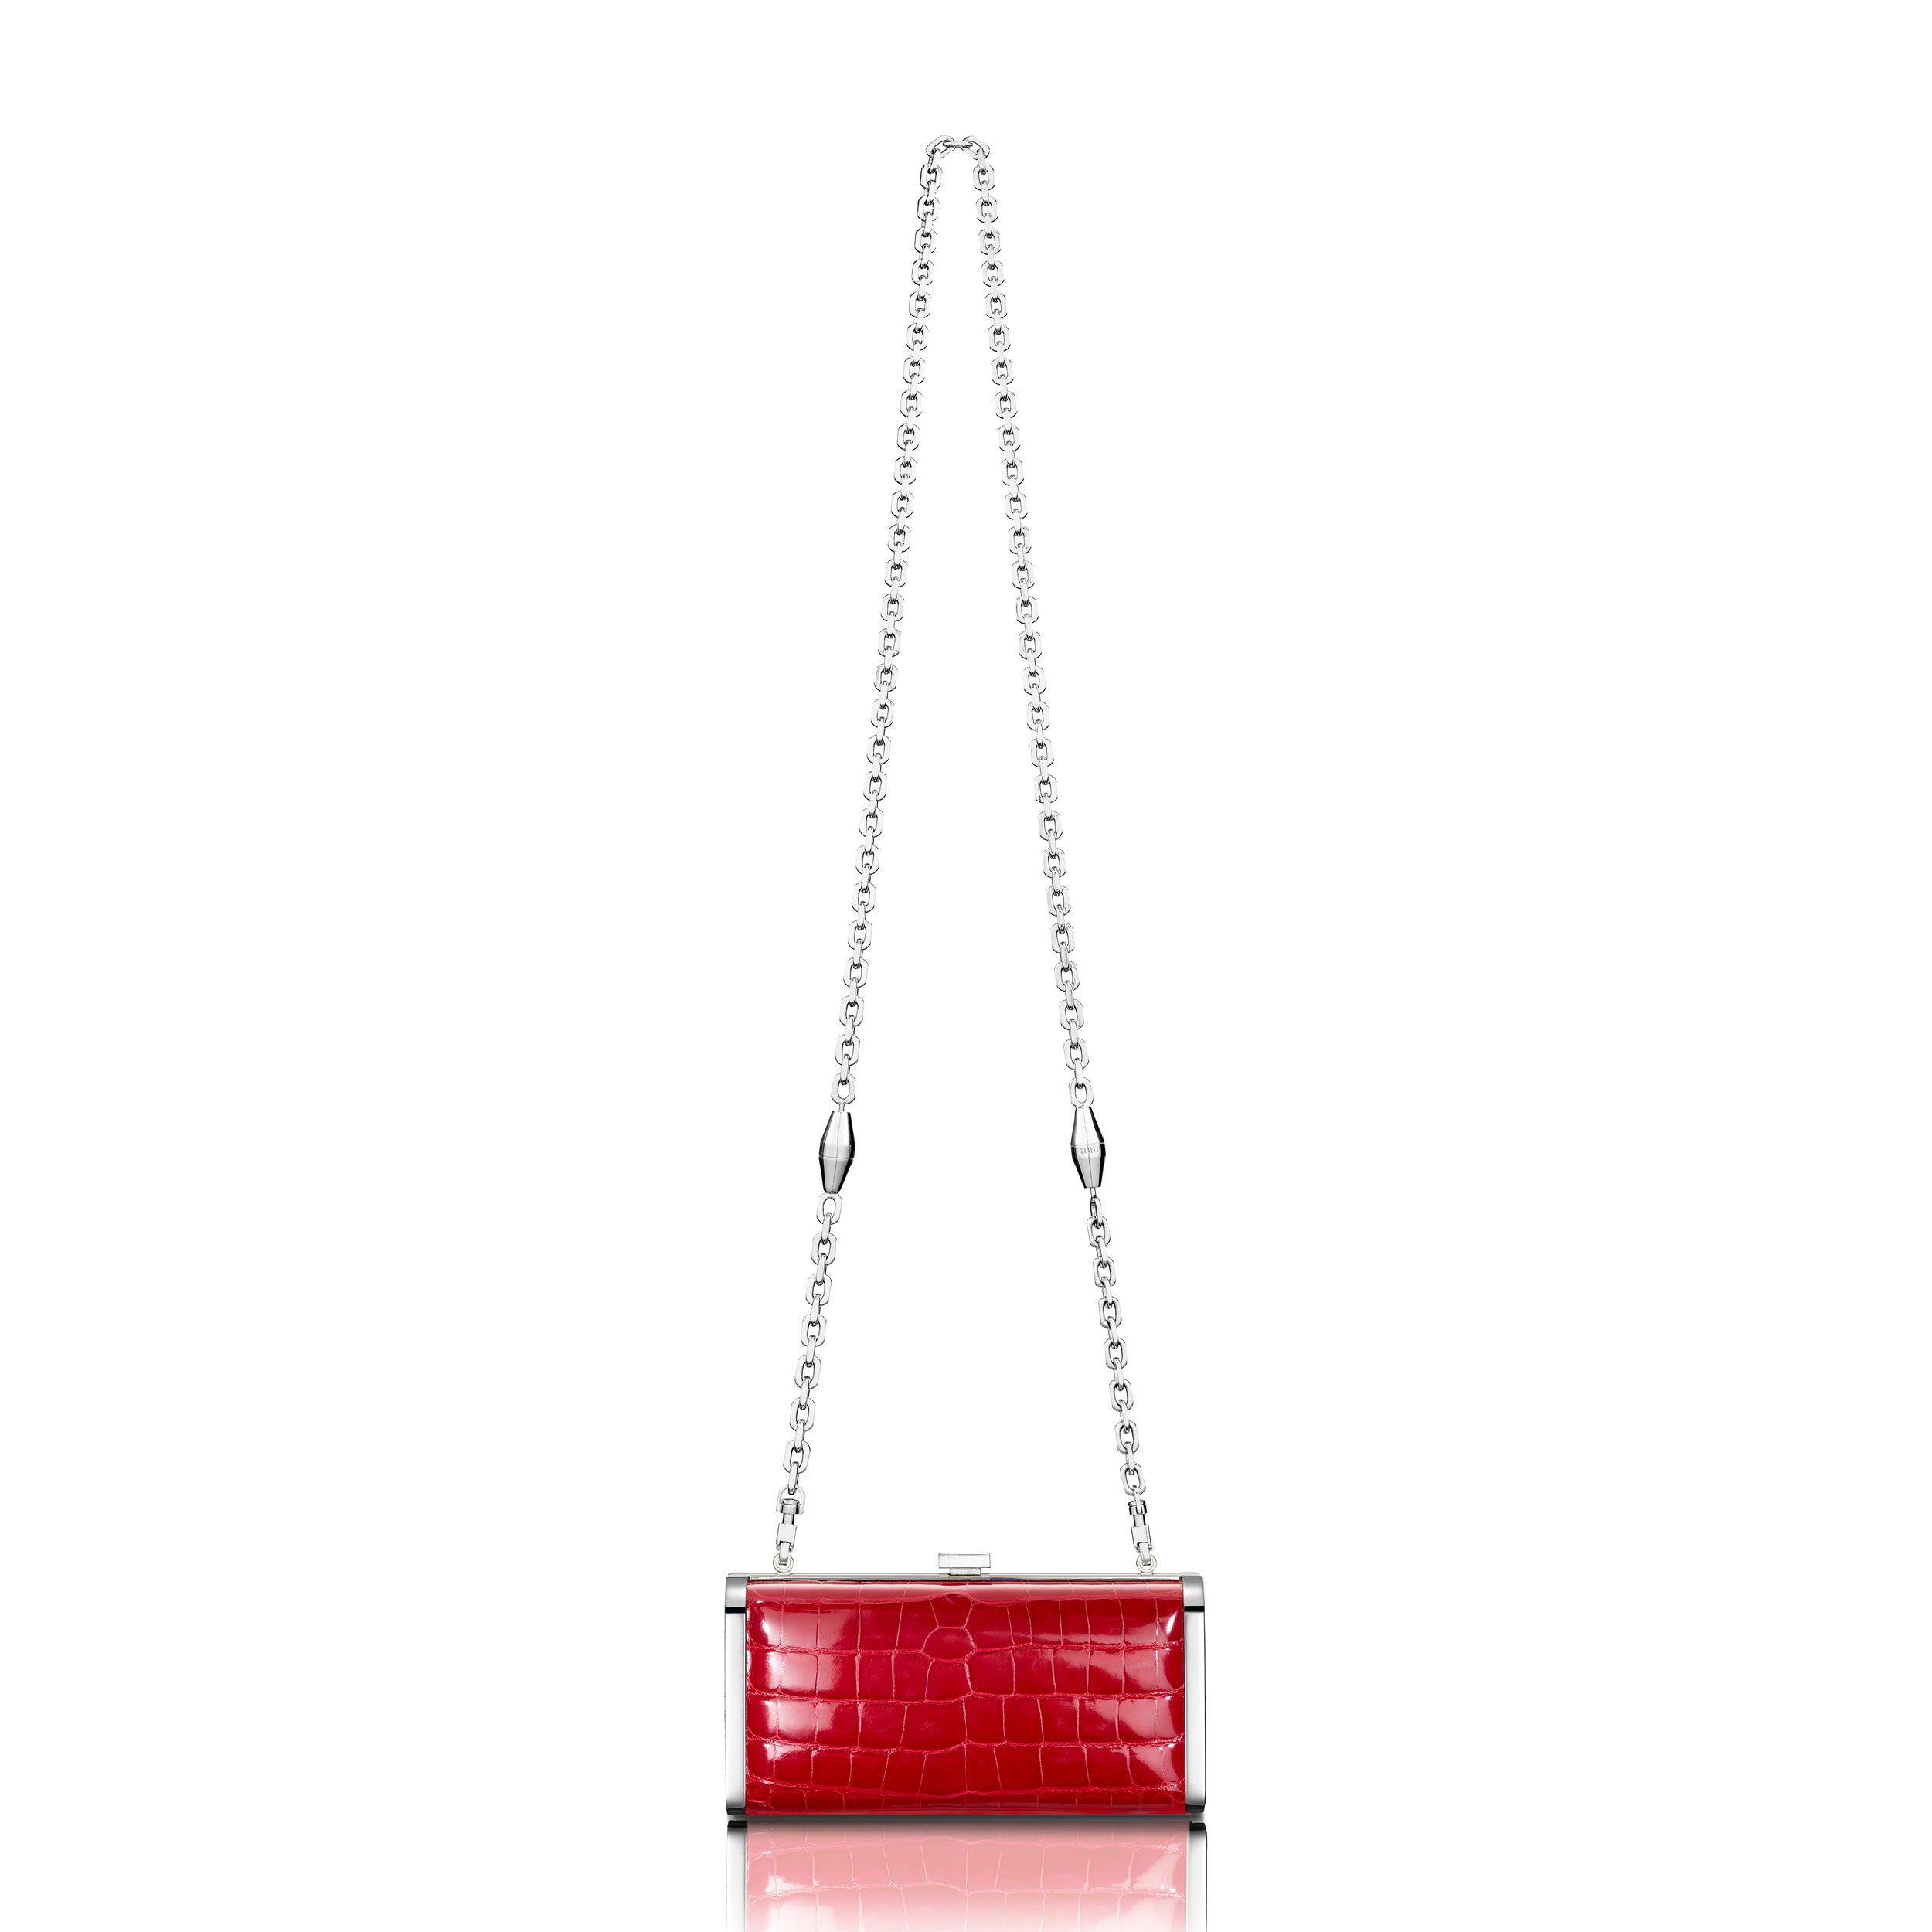 Square Clutch - Cerise Alligator